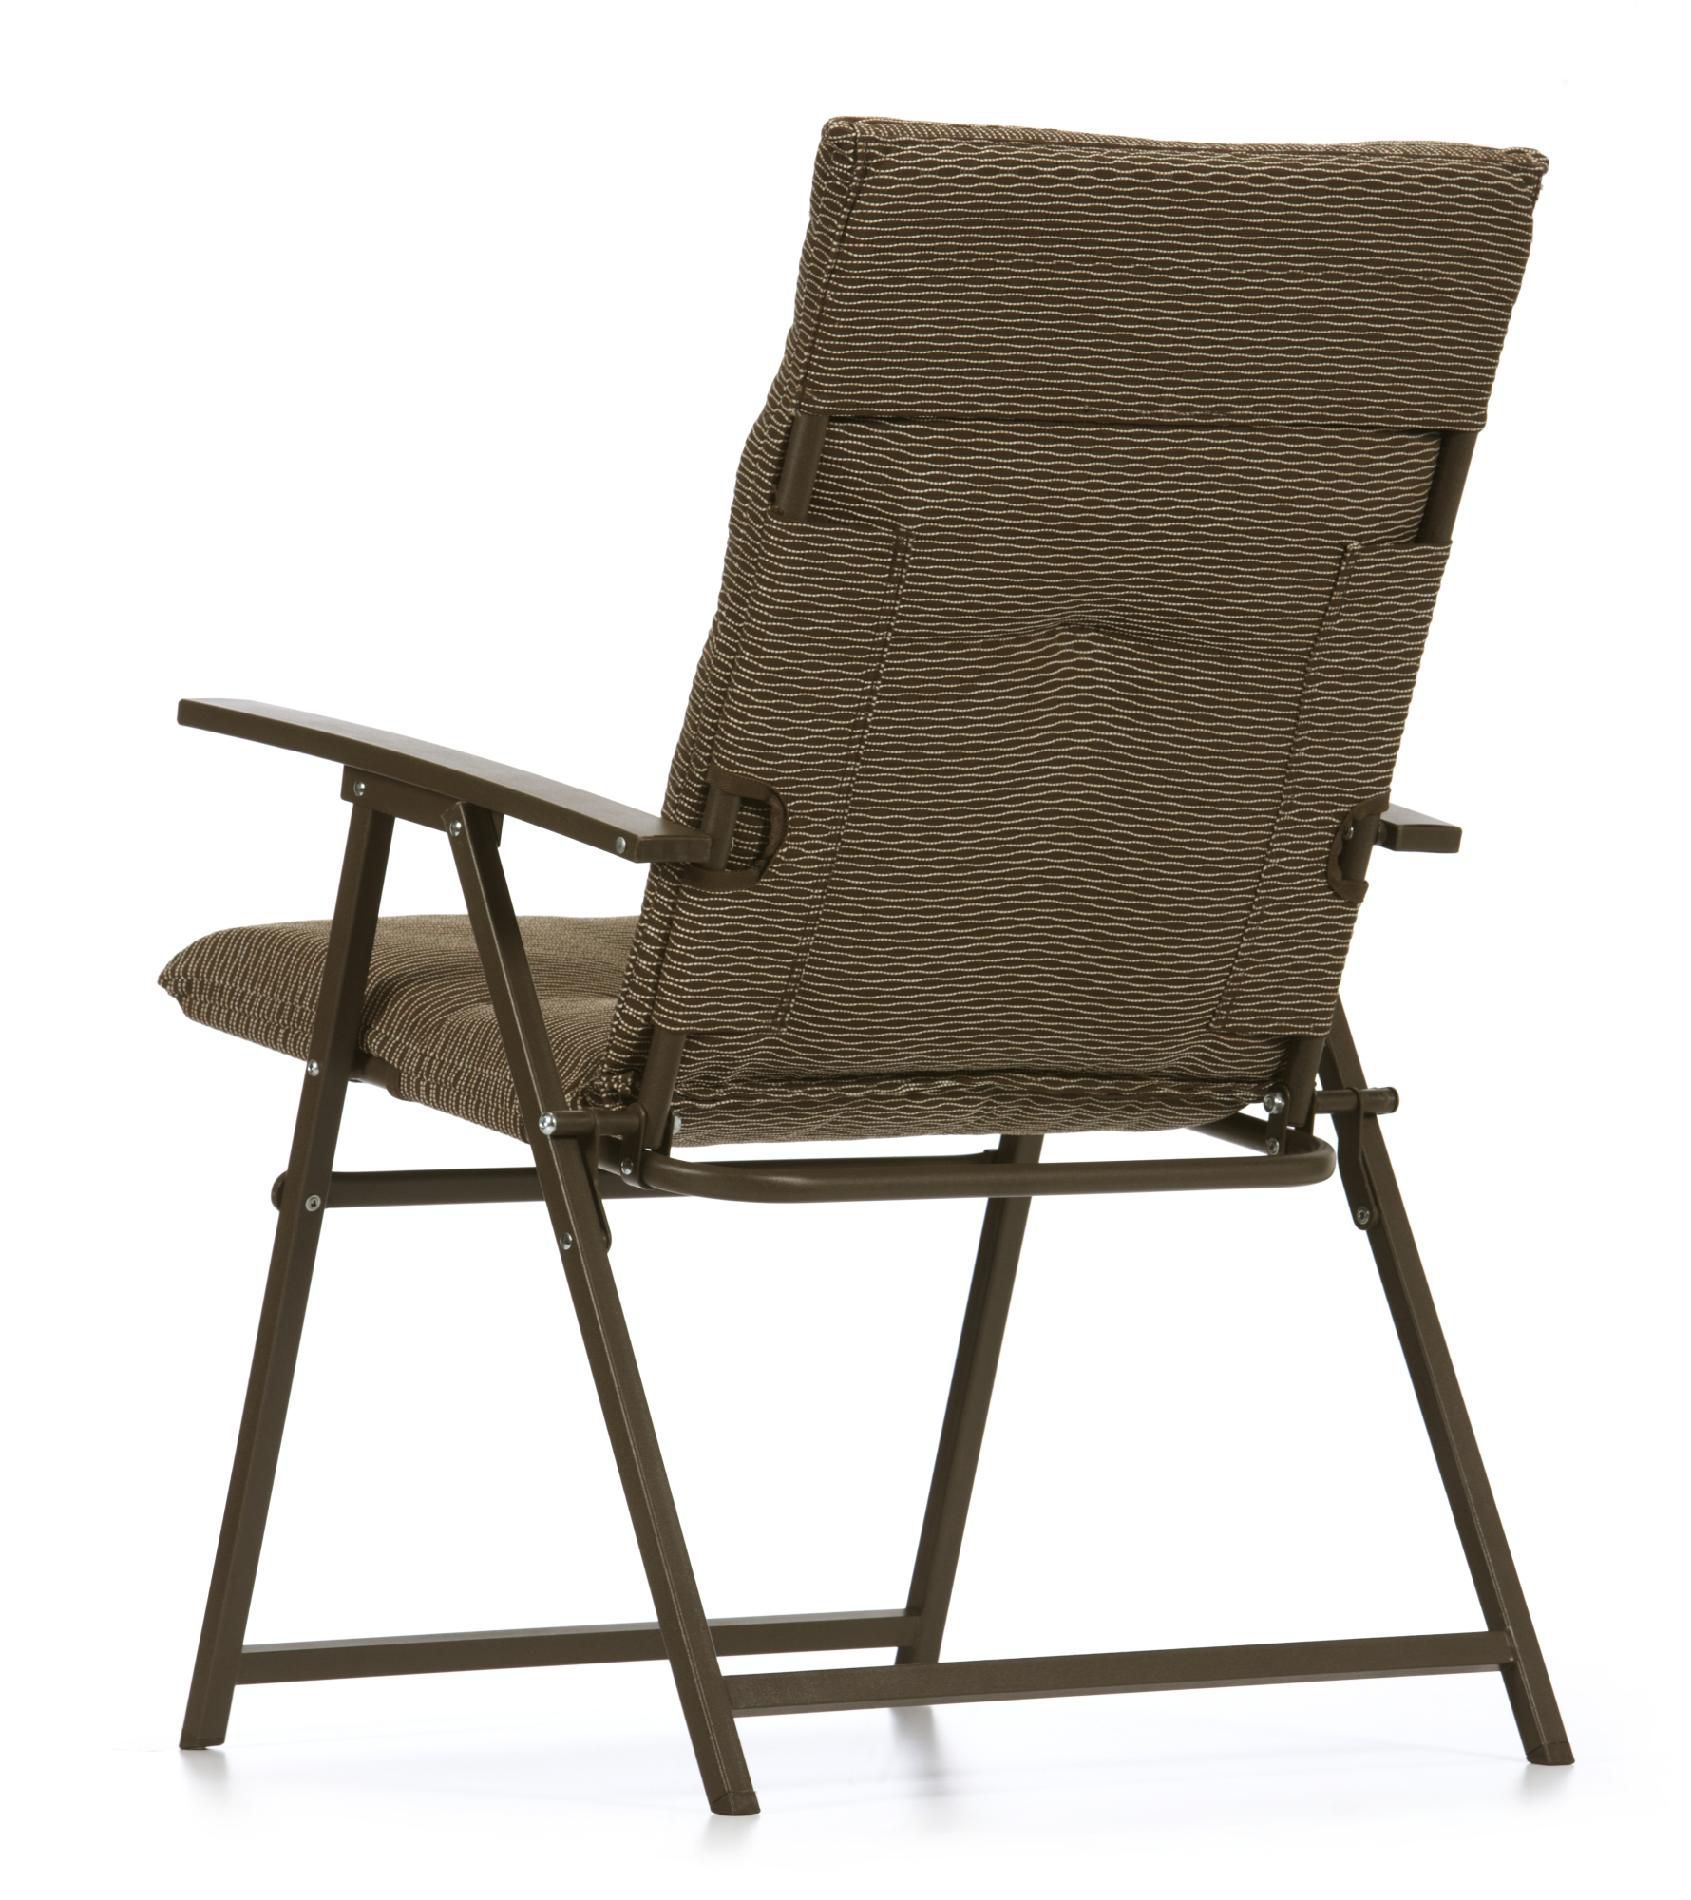 Outdoor Padded Folding Chairs With Arms Outdoor rocking